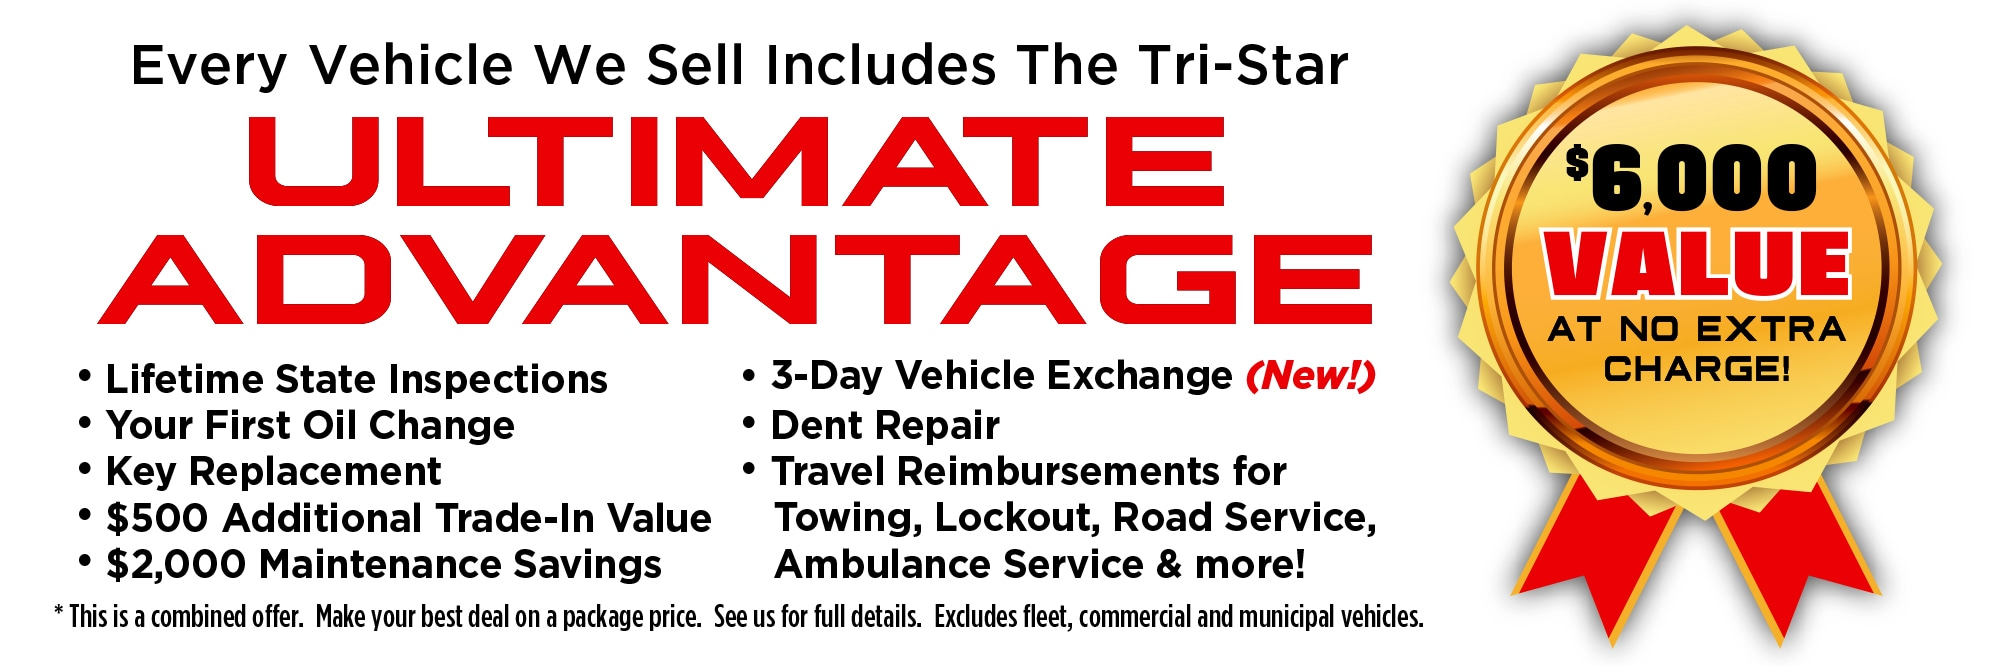 Tri Star Uniontown >> Tri-Star Uniontown: New & Used Chrysler Dodge Jeep & Ram Dealership Uniontown PA | Serving Maple ...